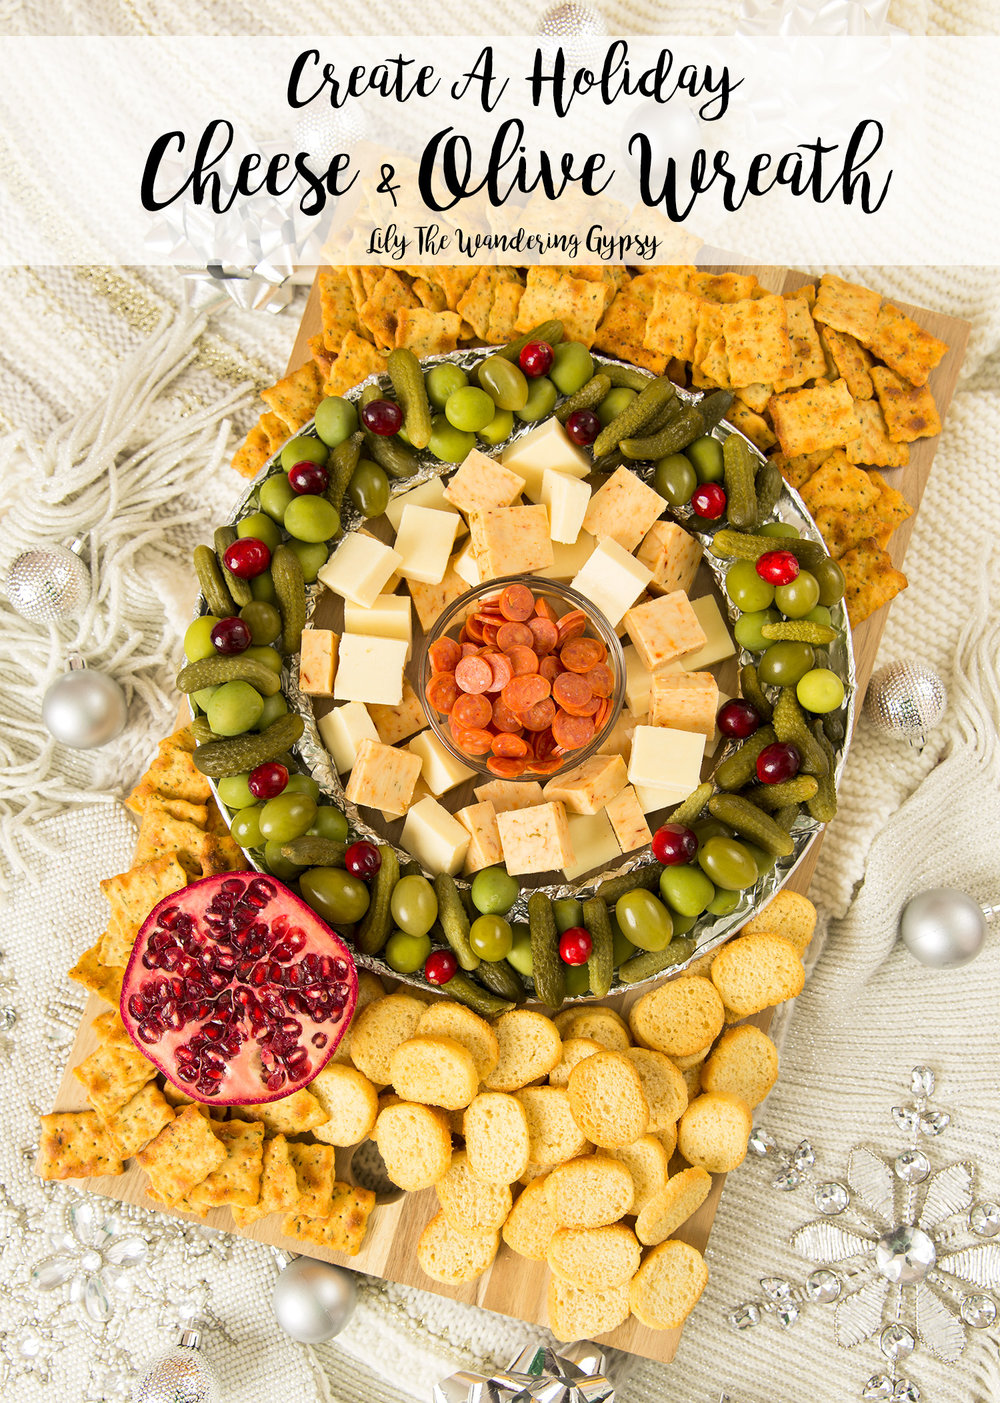 #EasyCheesy - Holiday Cheese + Olive Wreath